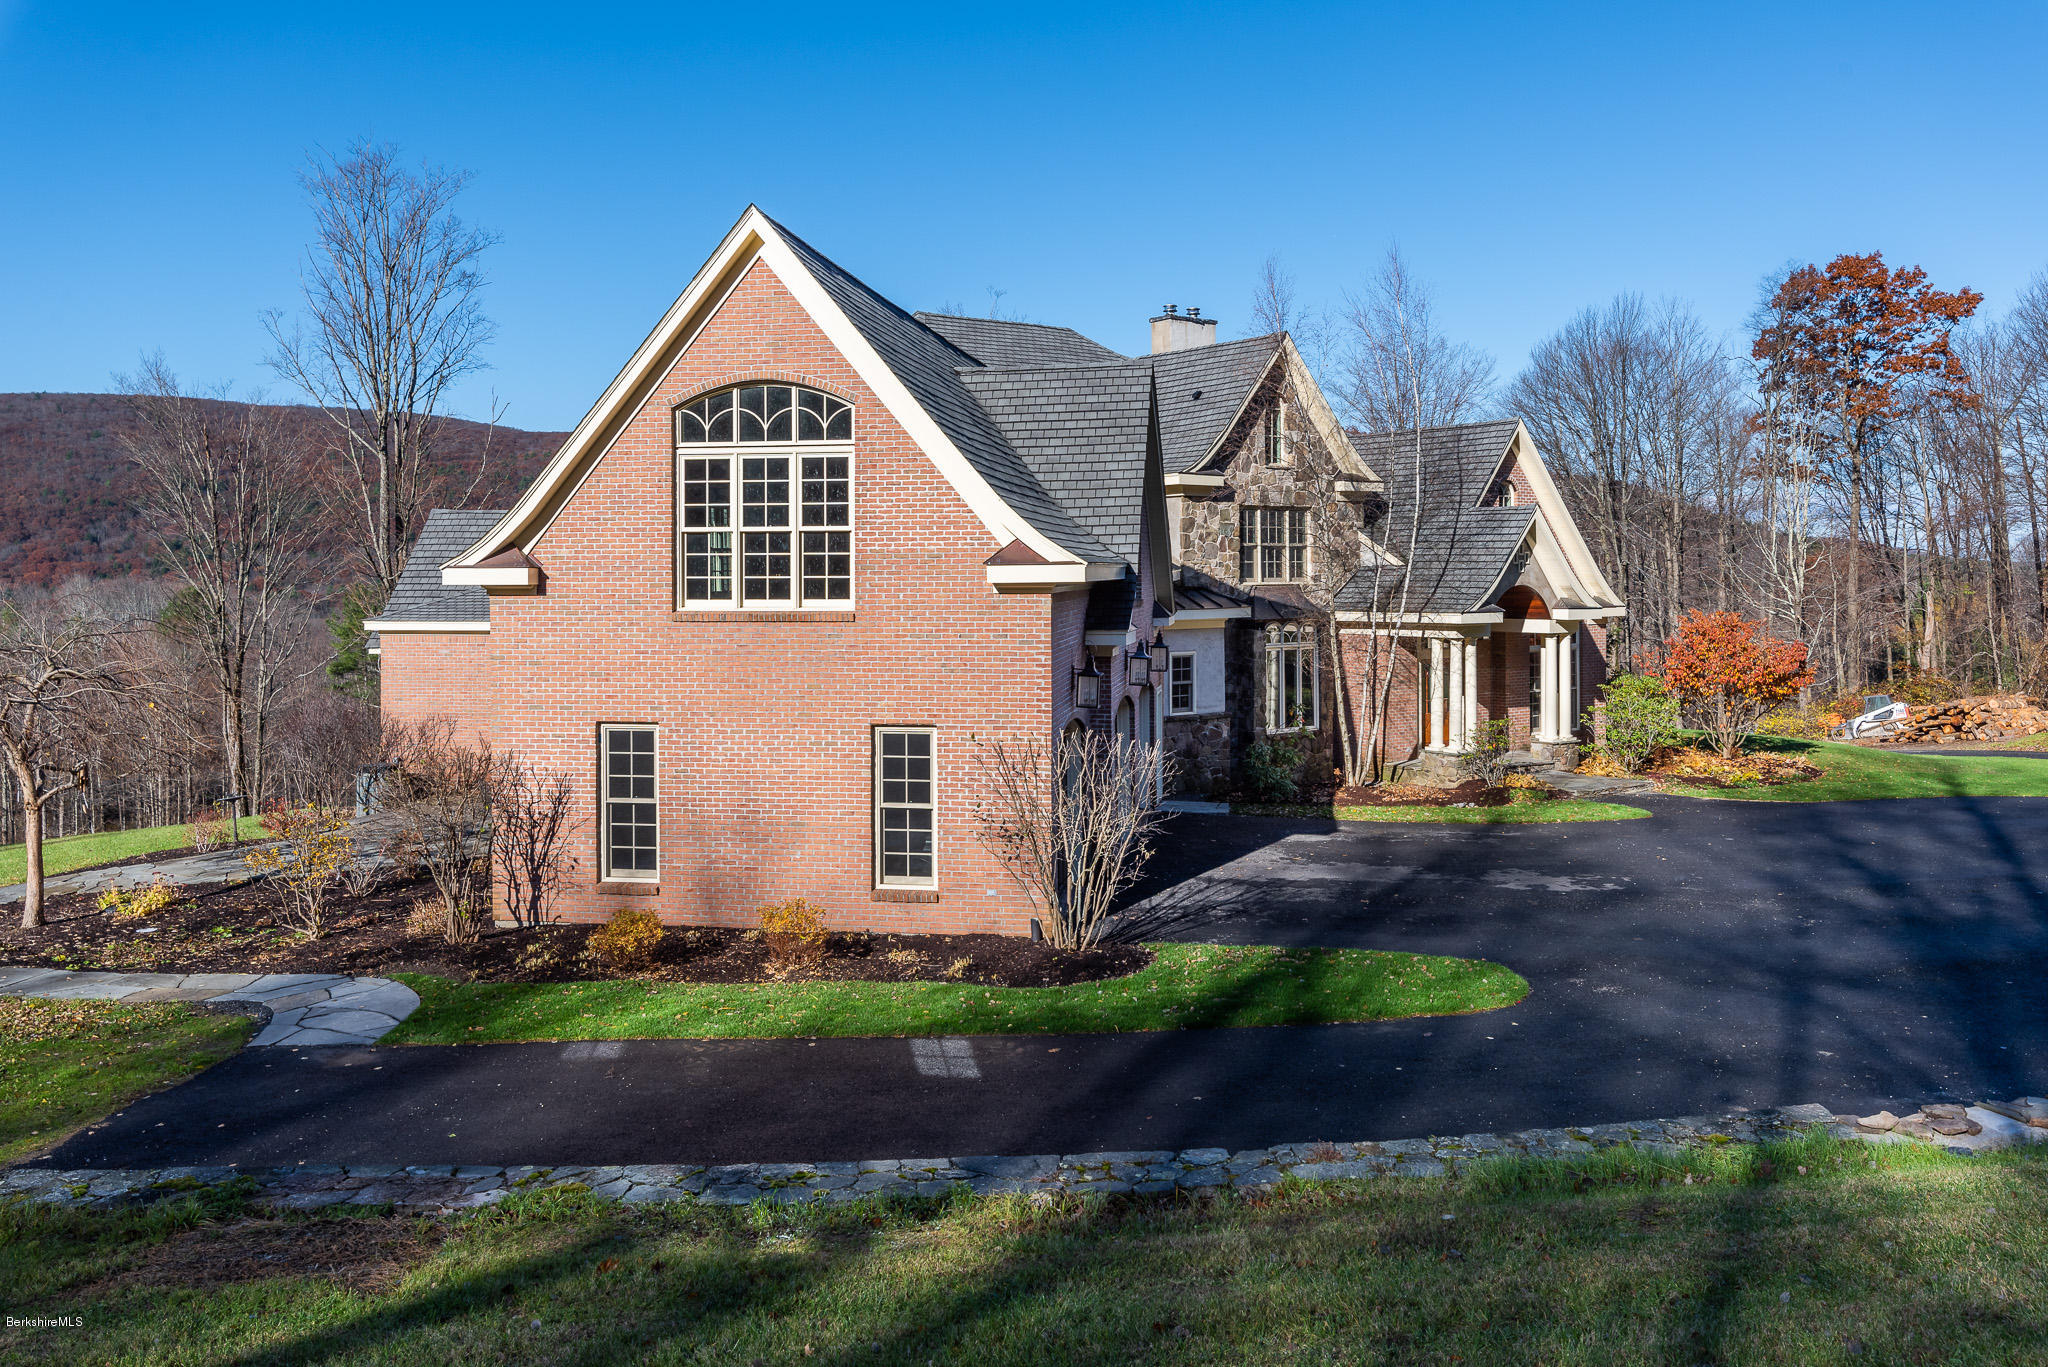 123 Center, West Stockbridge, Massachusetts 01266, 5 Bedrooms Bedrooms, 12 Rooms Rooms,6 BathroomsBathrooms,Residential,For Sale,Center,230825